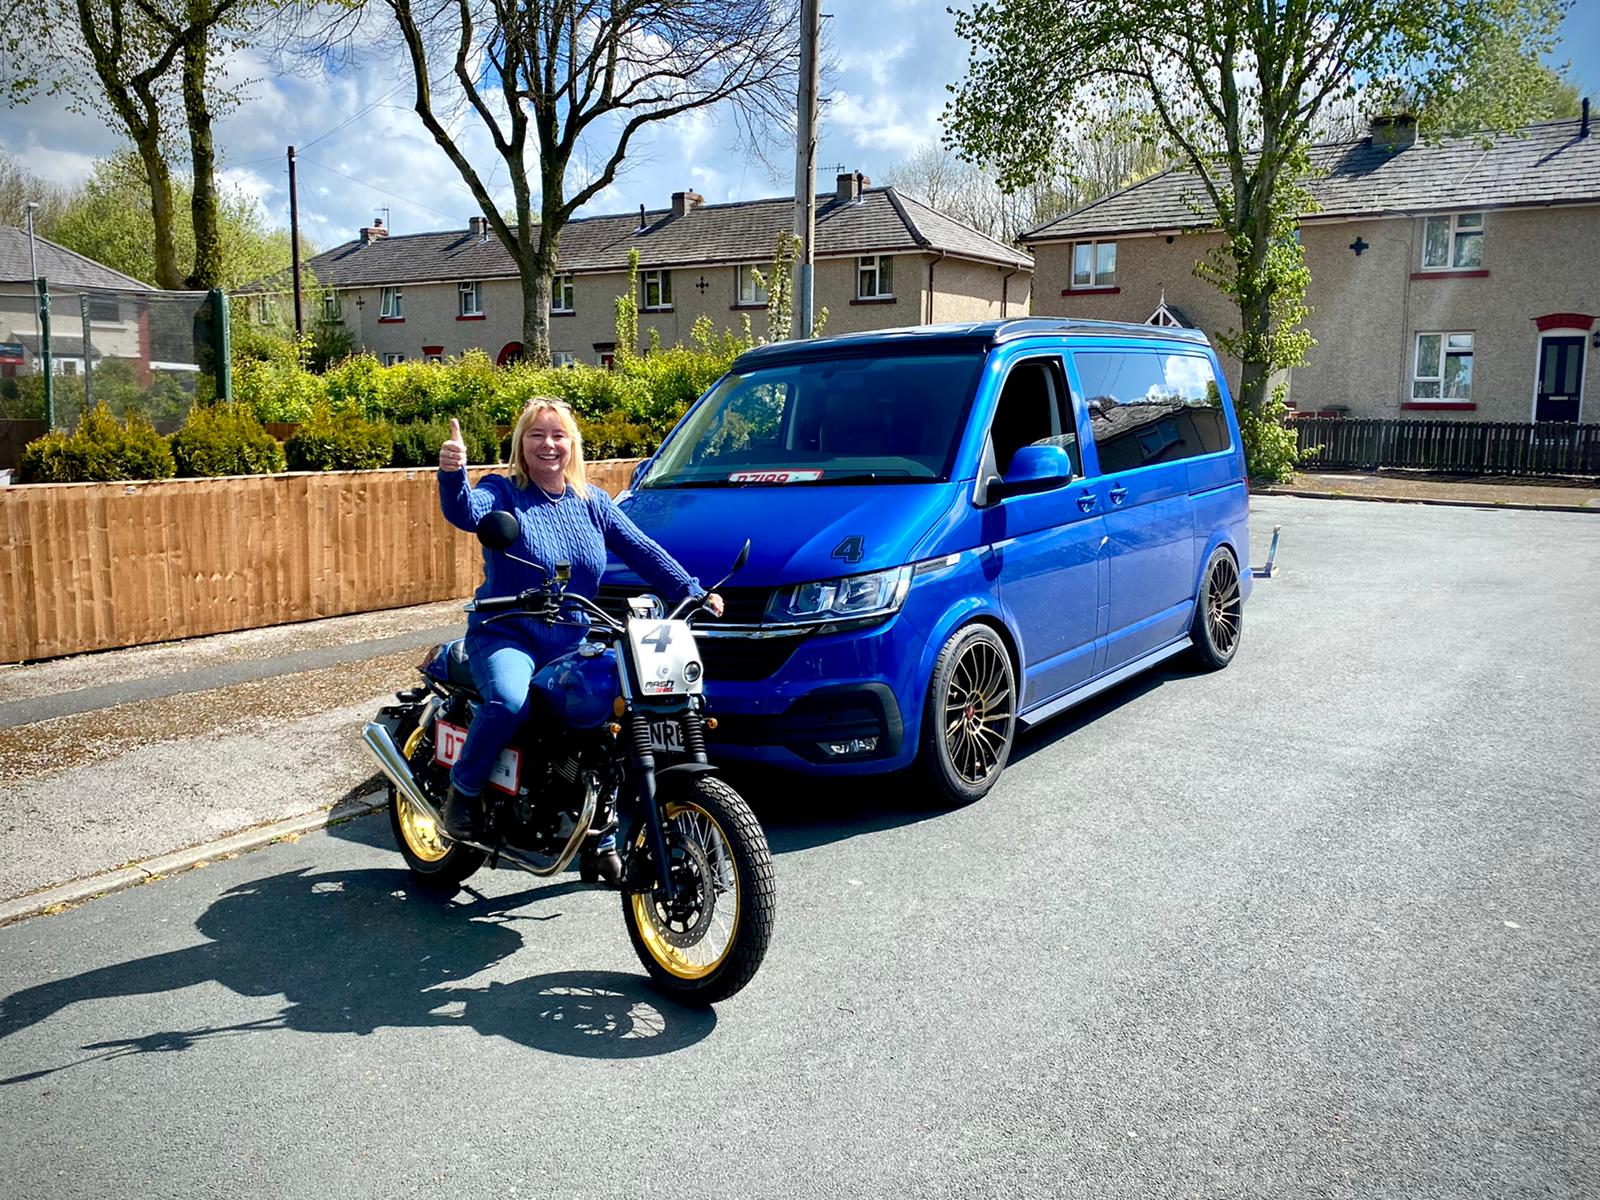 Winner susan Smith of a 2020 VW T6.1 Highline combo with Motorbike - 5th April